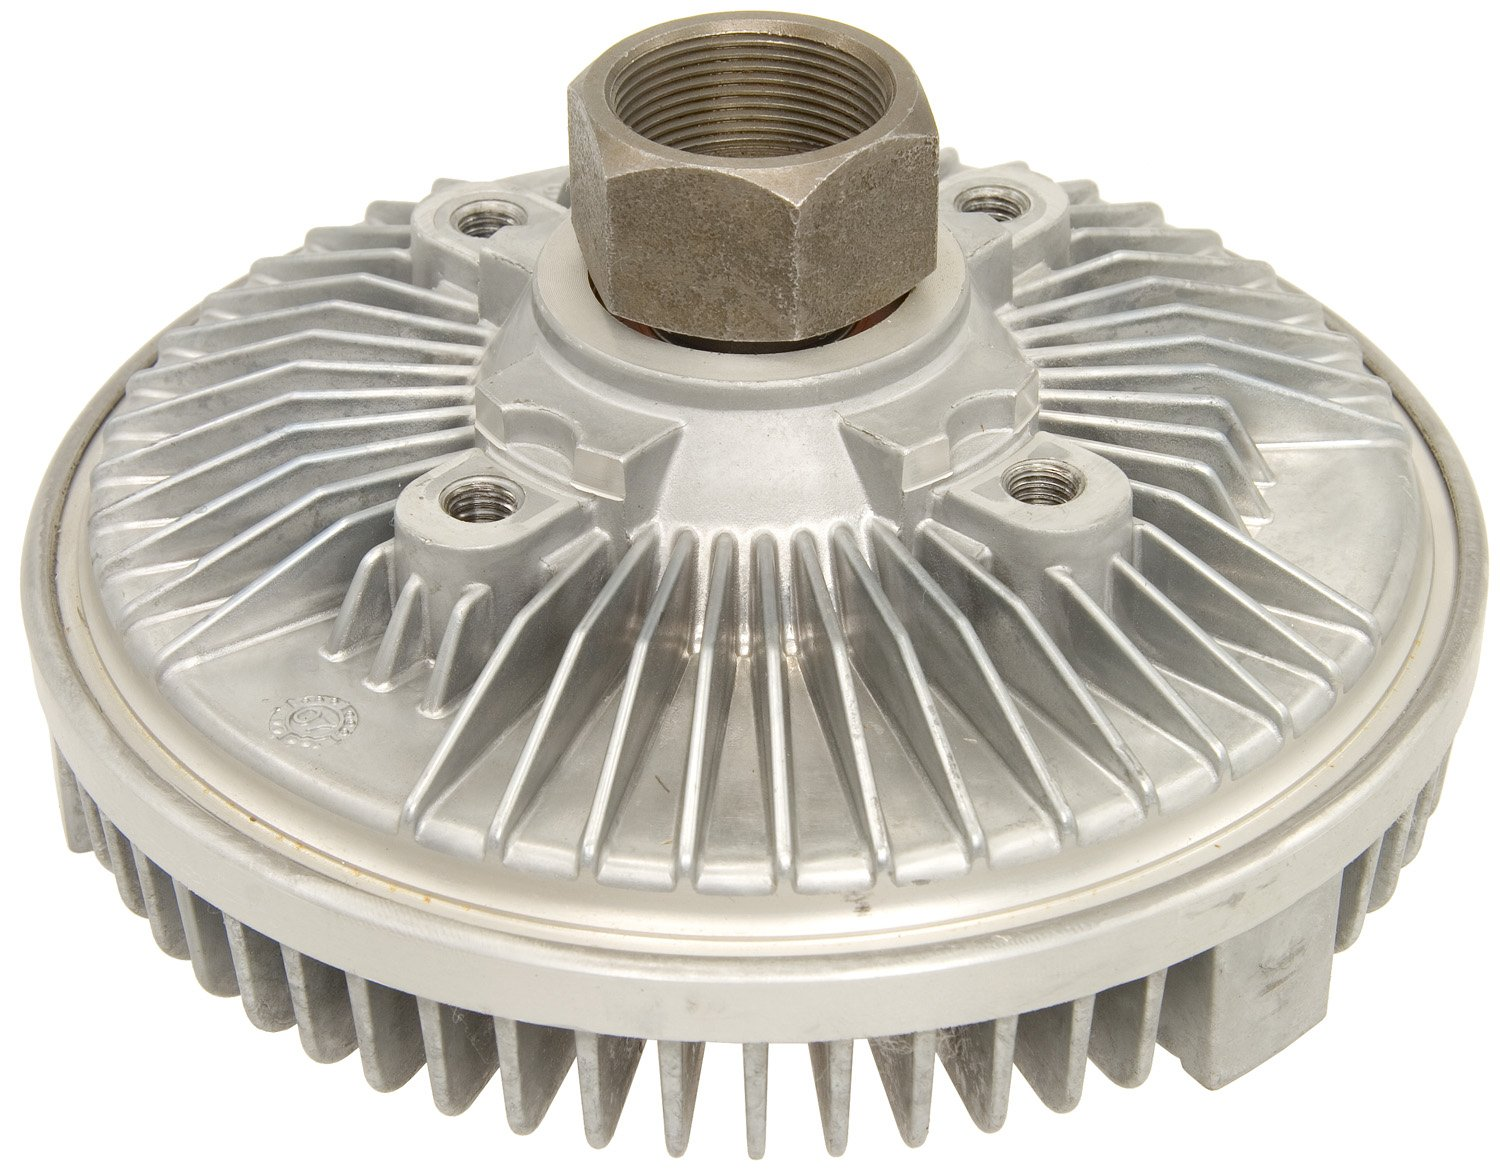 Hayden Automotive 2790 Premium Fan Clutch